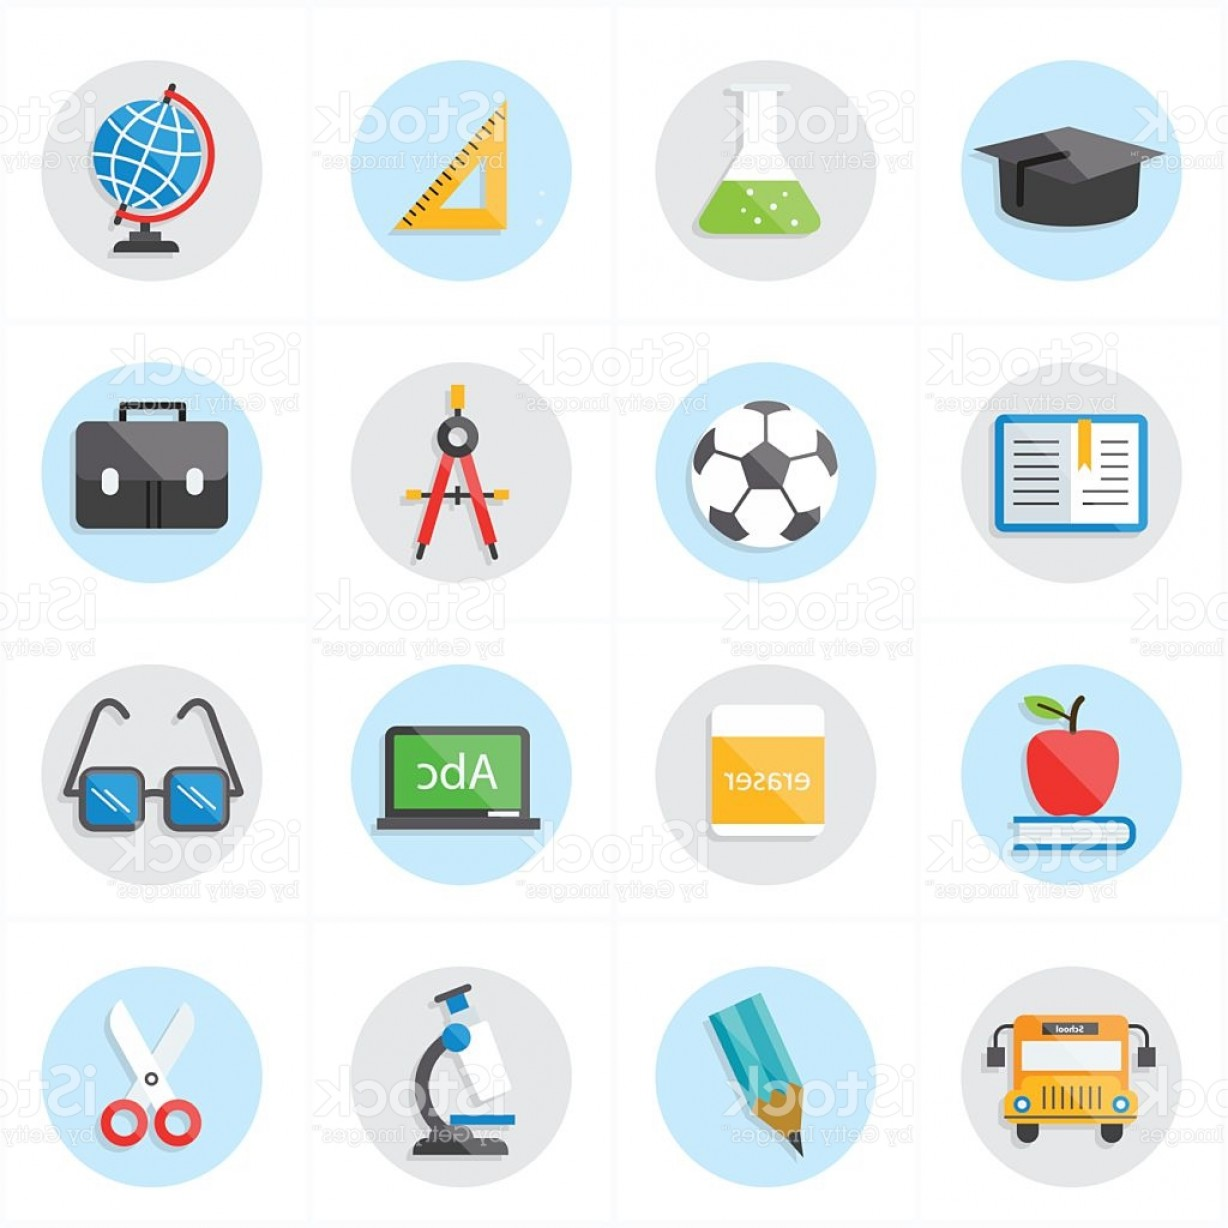 Free Vector Flat Education Icons: Flat Icons For Education Icons And School Icons Vector Illustration Gm